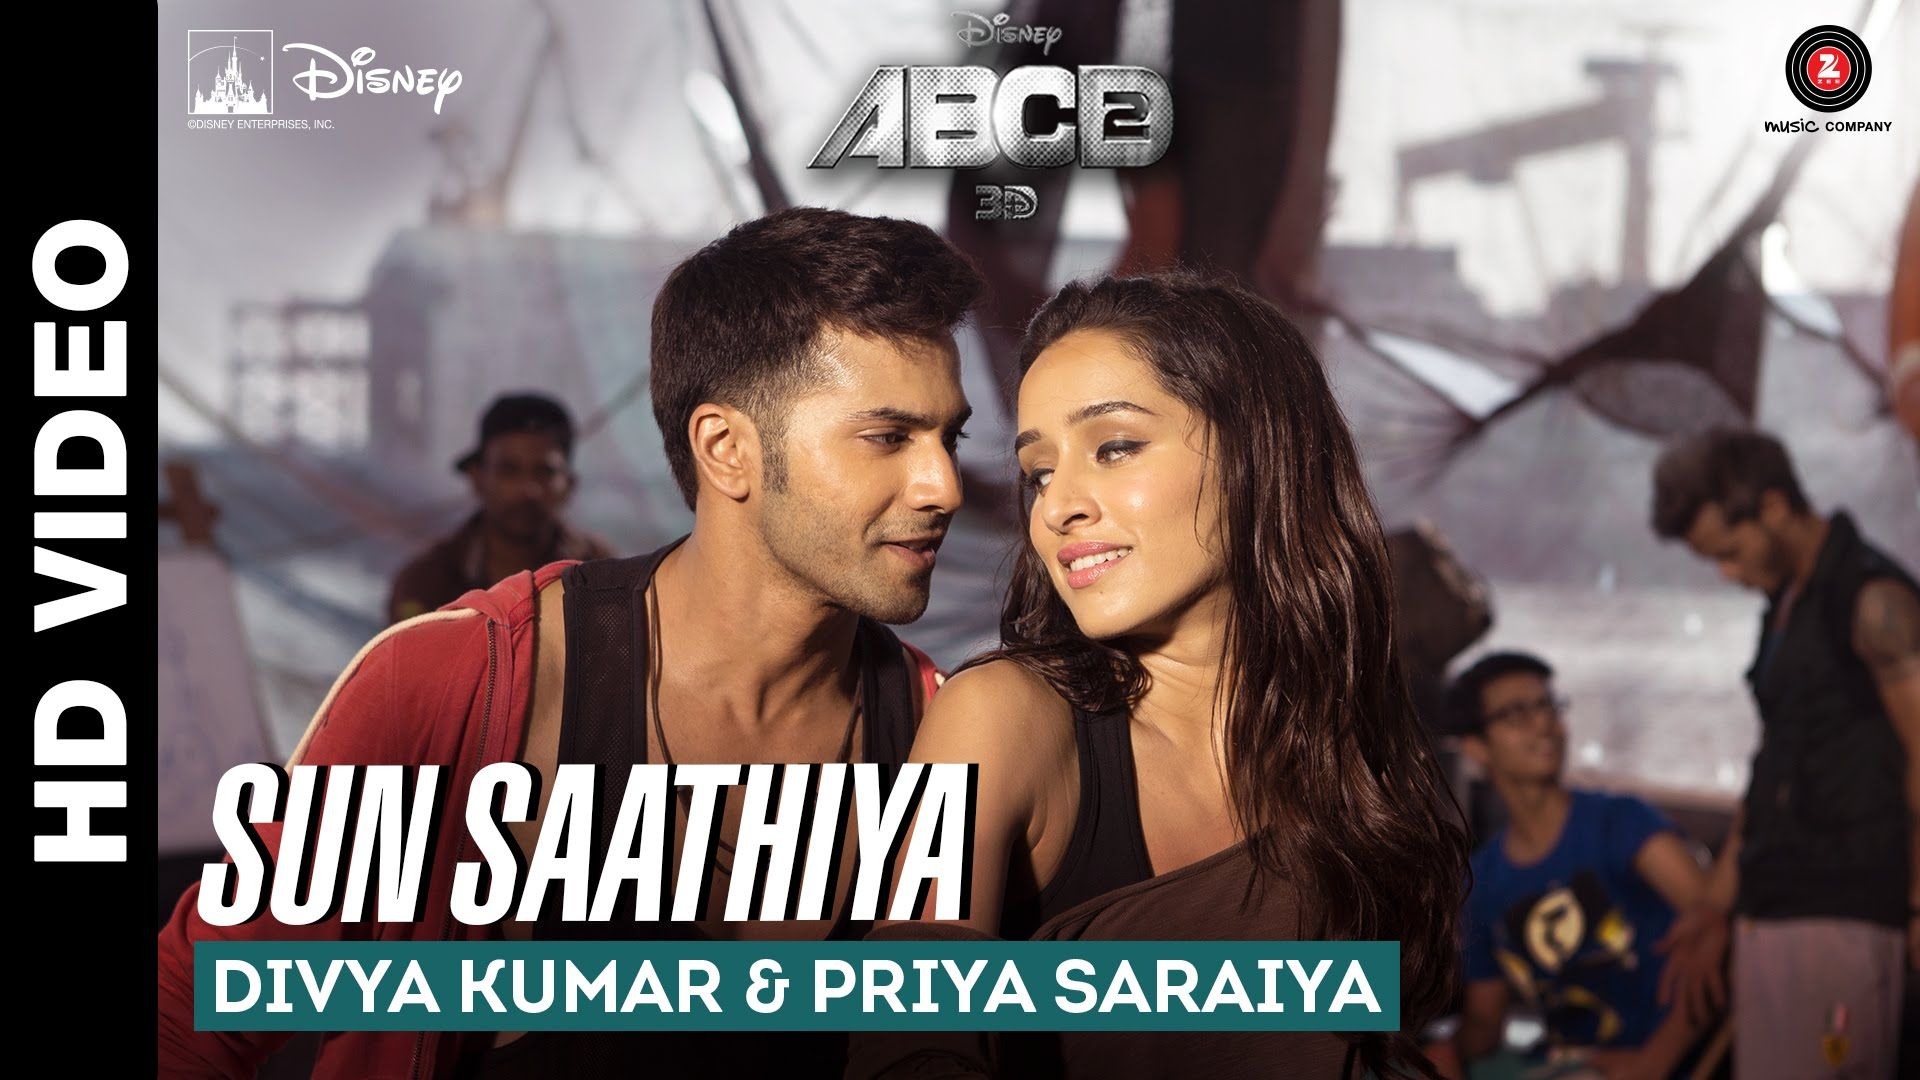 abcd 2 movie songs free download mp3 in hindi